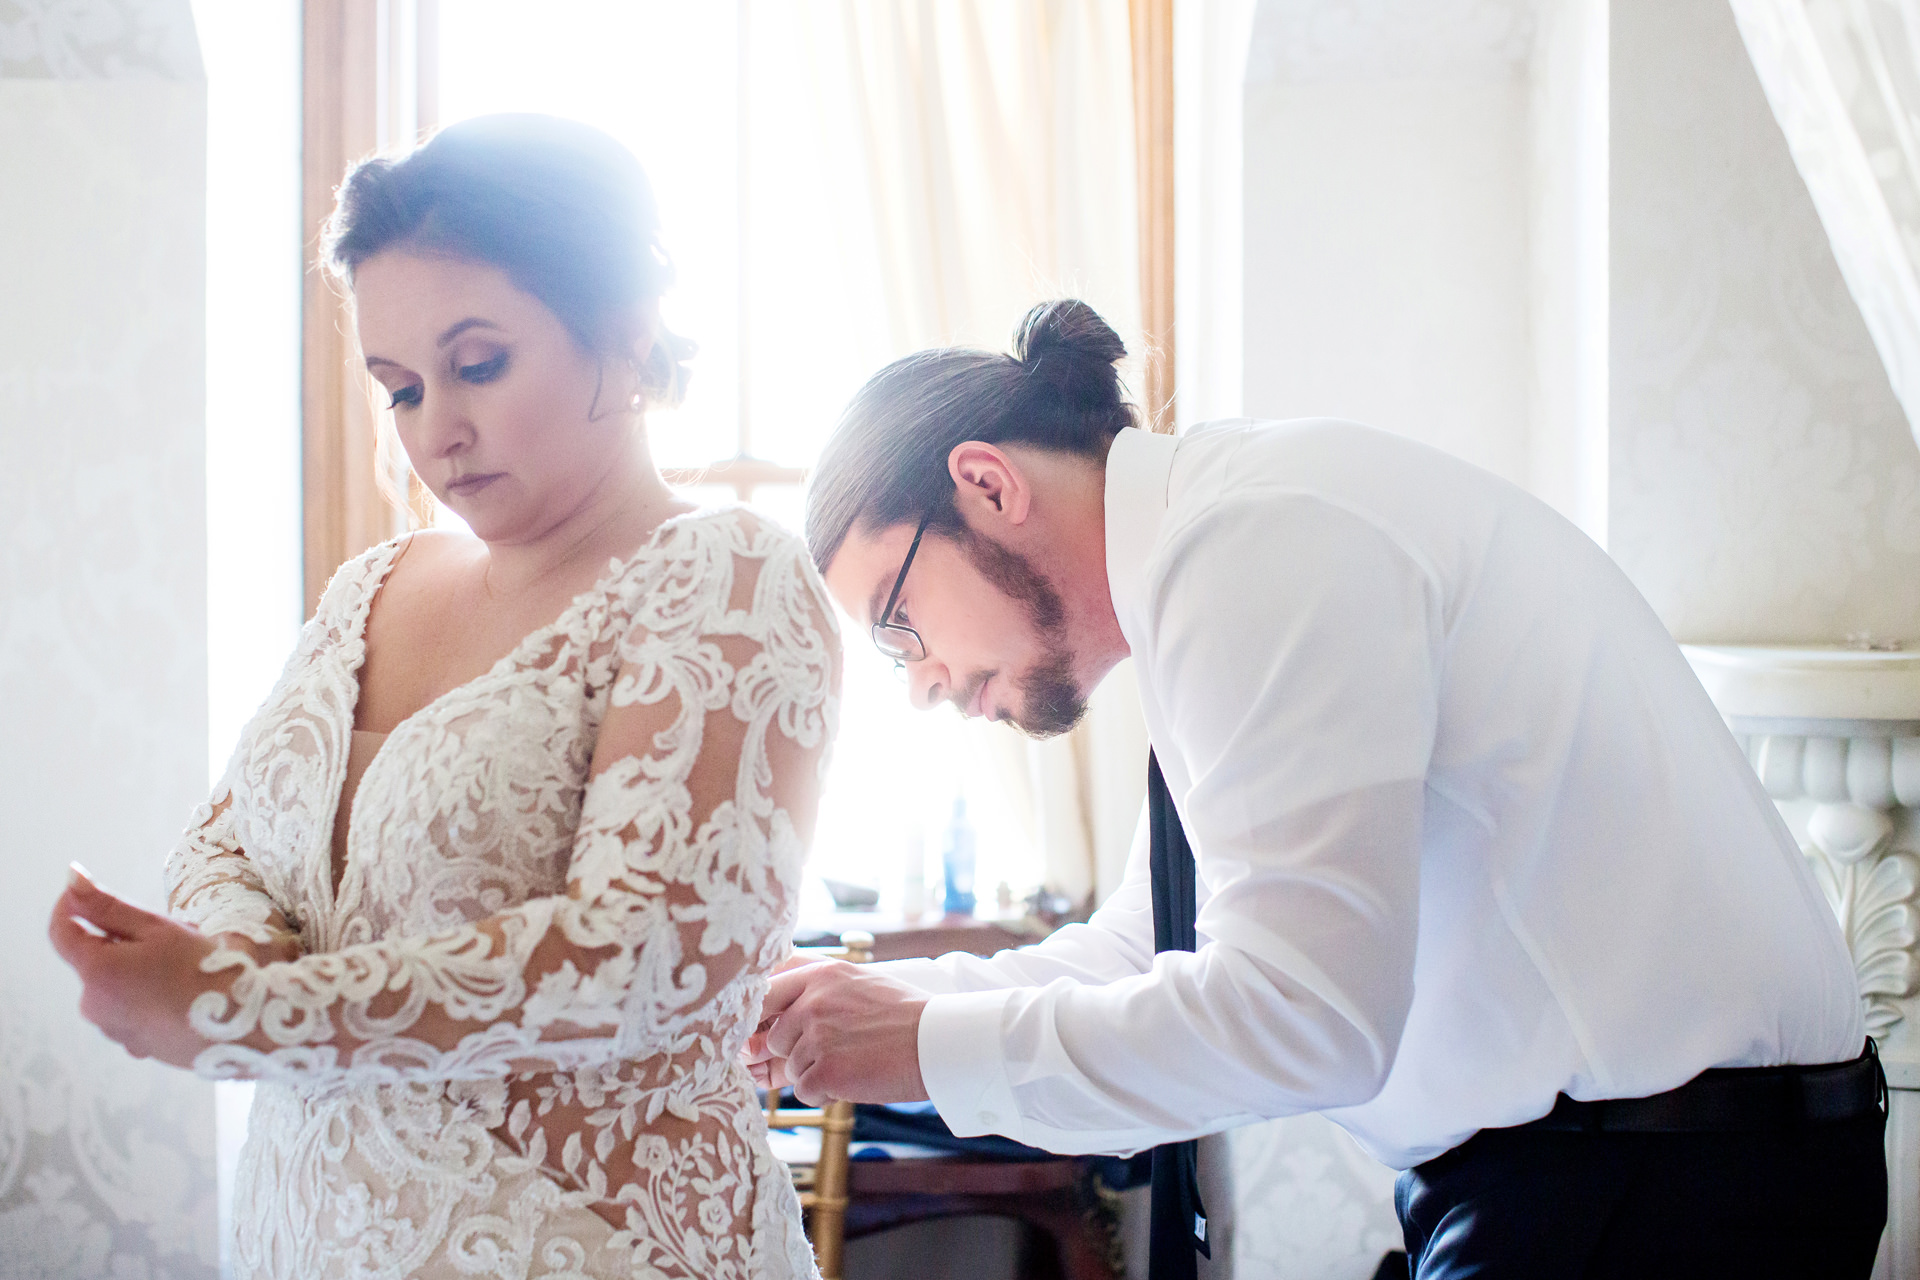 Gables LBI Wedding Picture, Beach Haven, NJ | The bride is preparing her gown with help from the groom